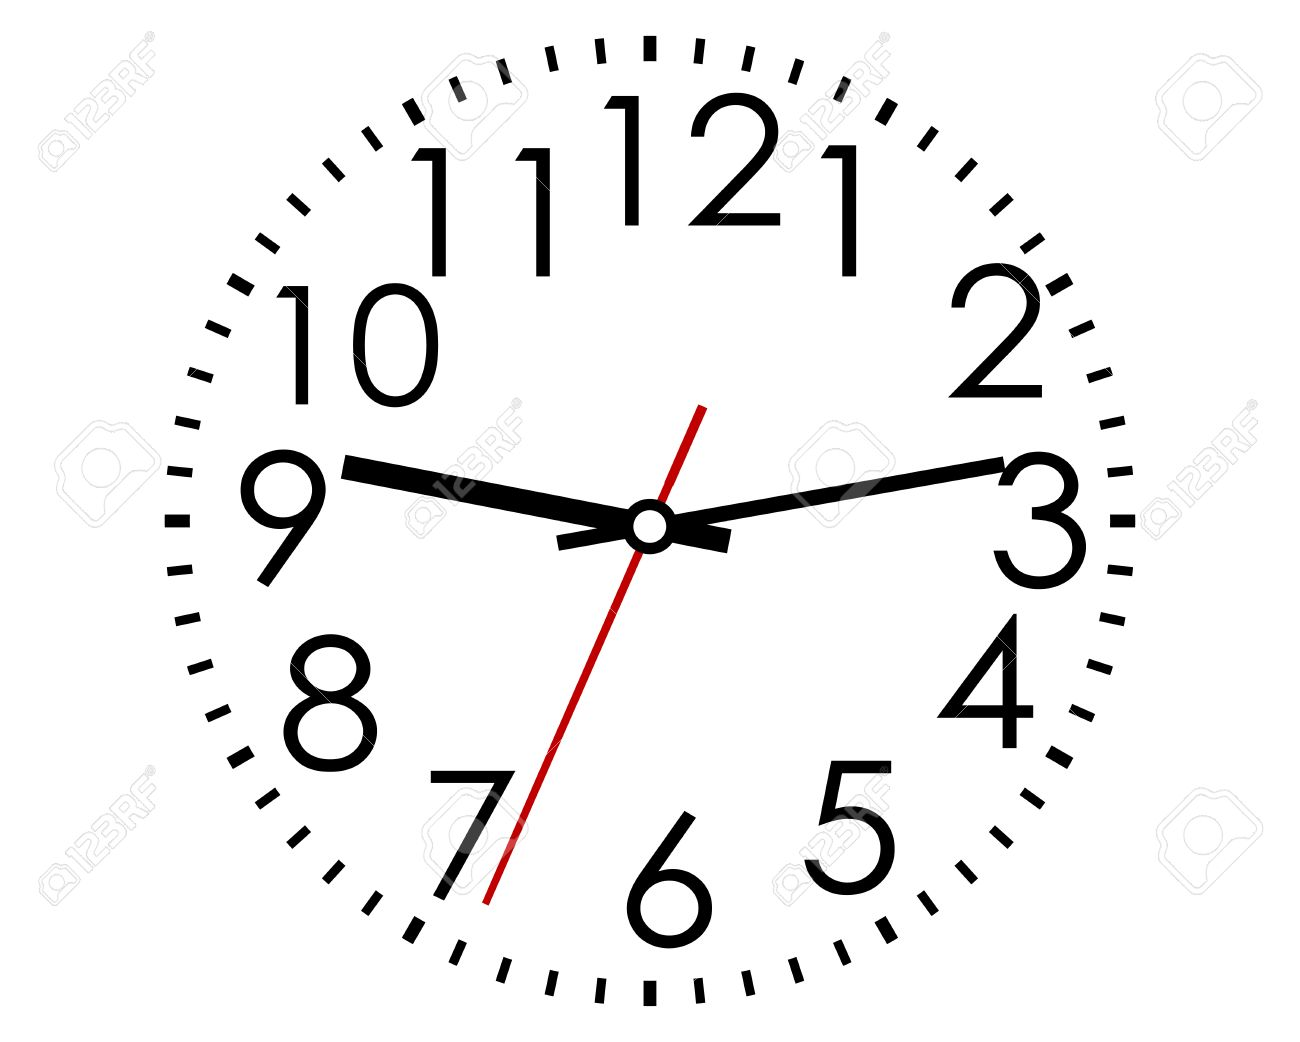 Round clock face with Arabic numerals and hour, minute and second